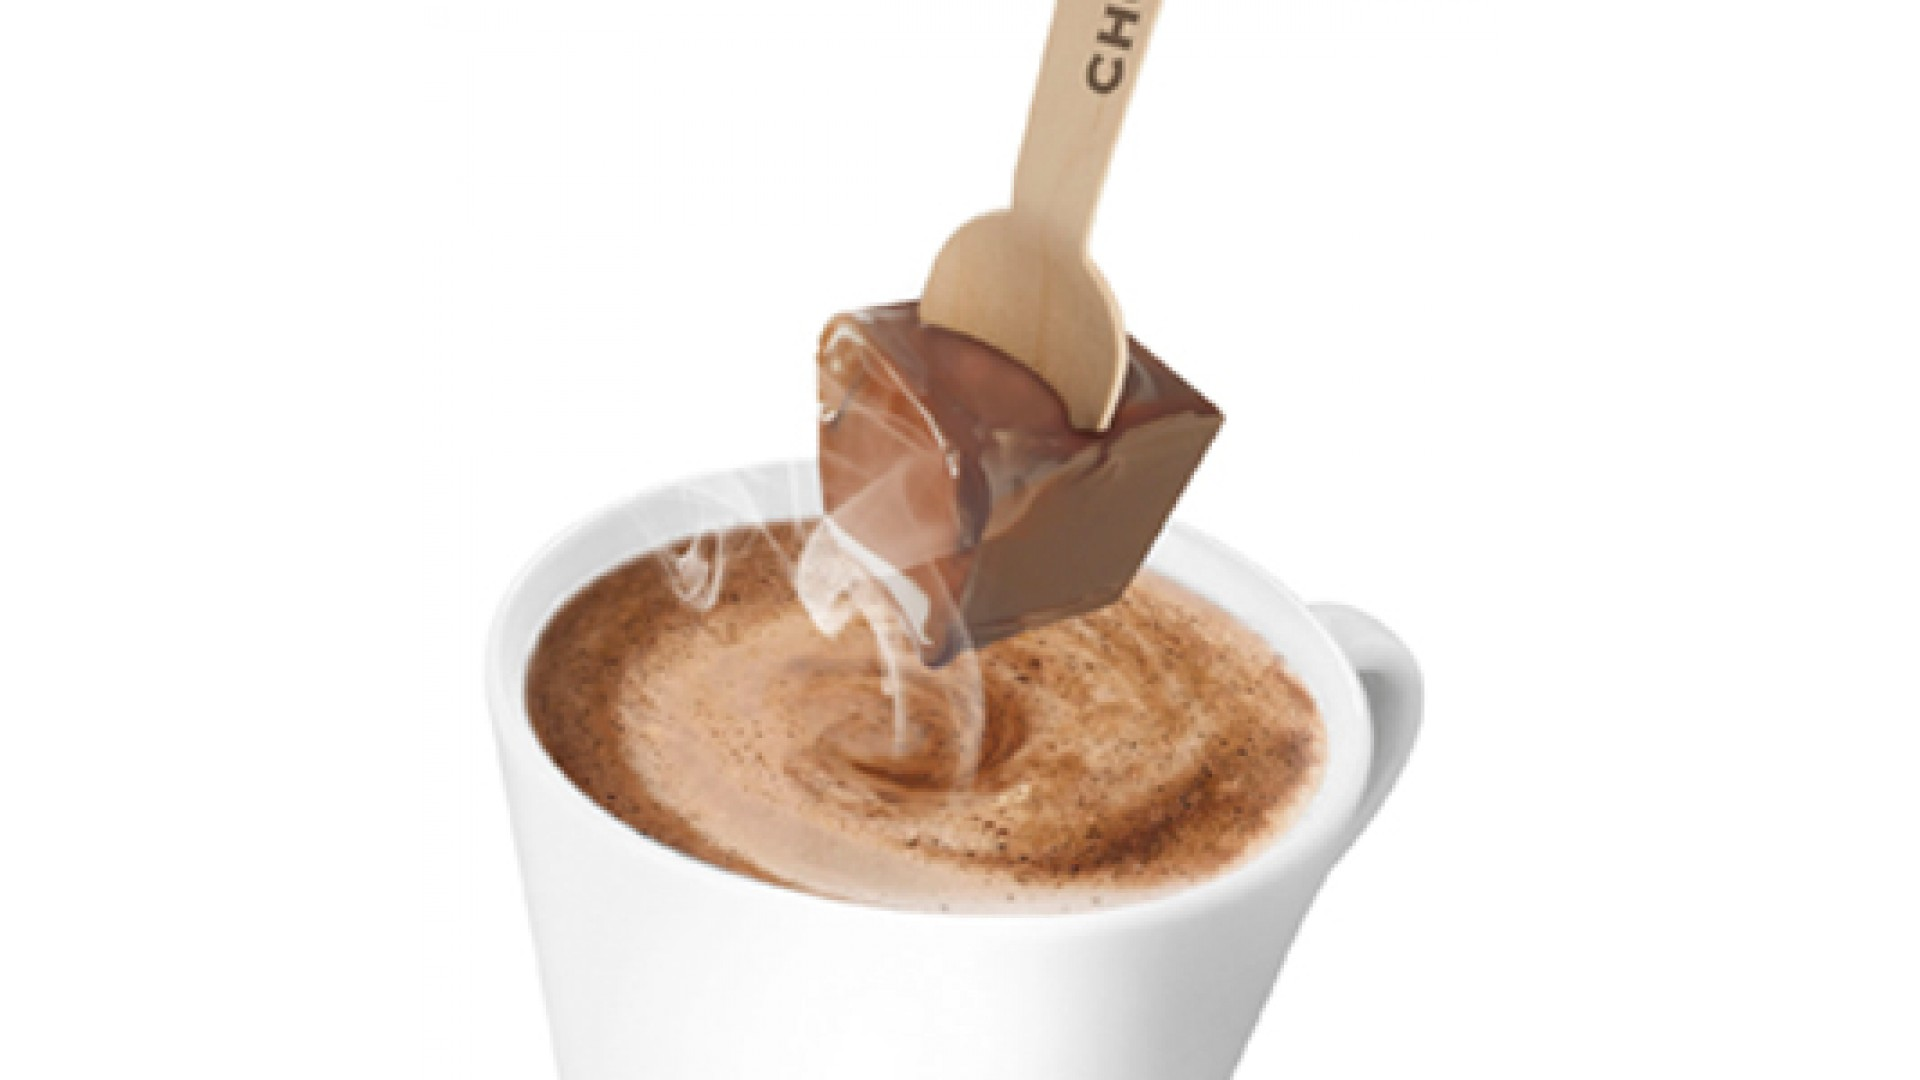 choc-o-lait spoon